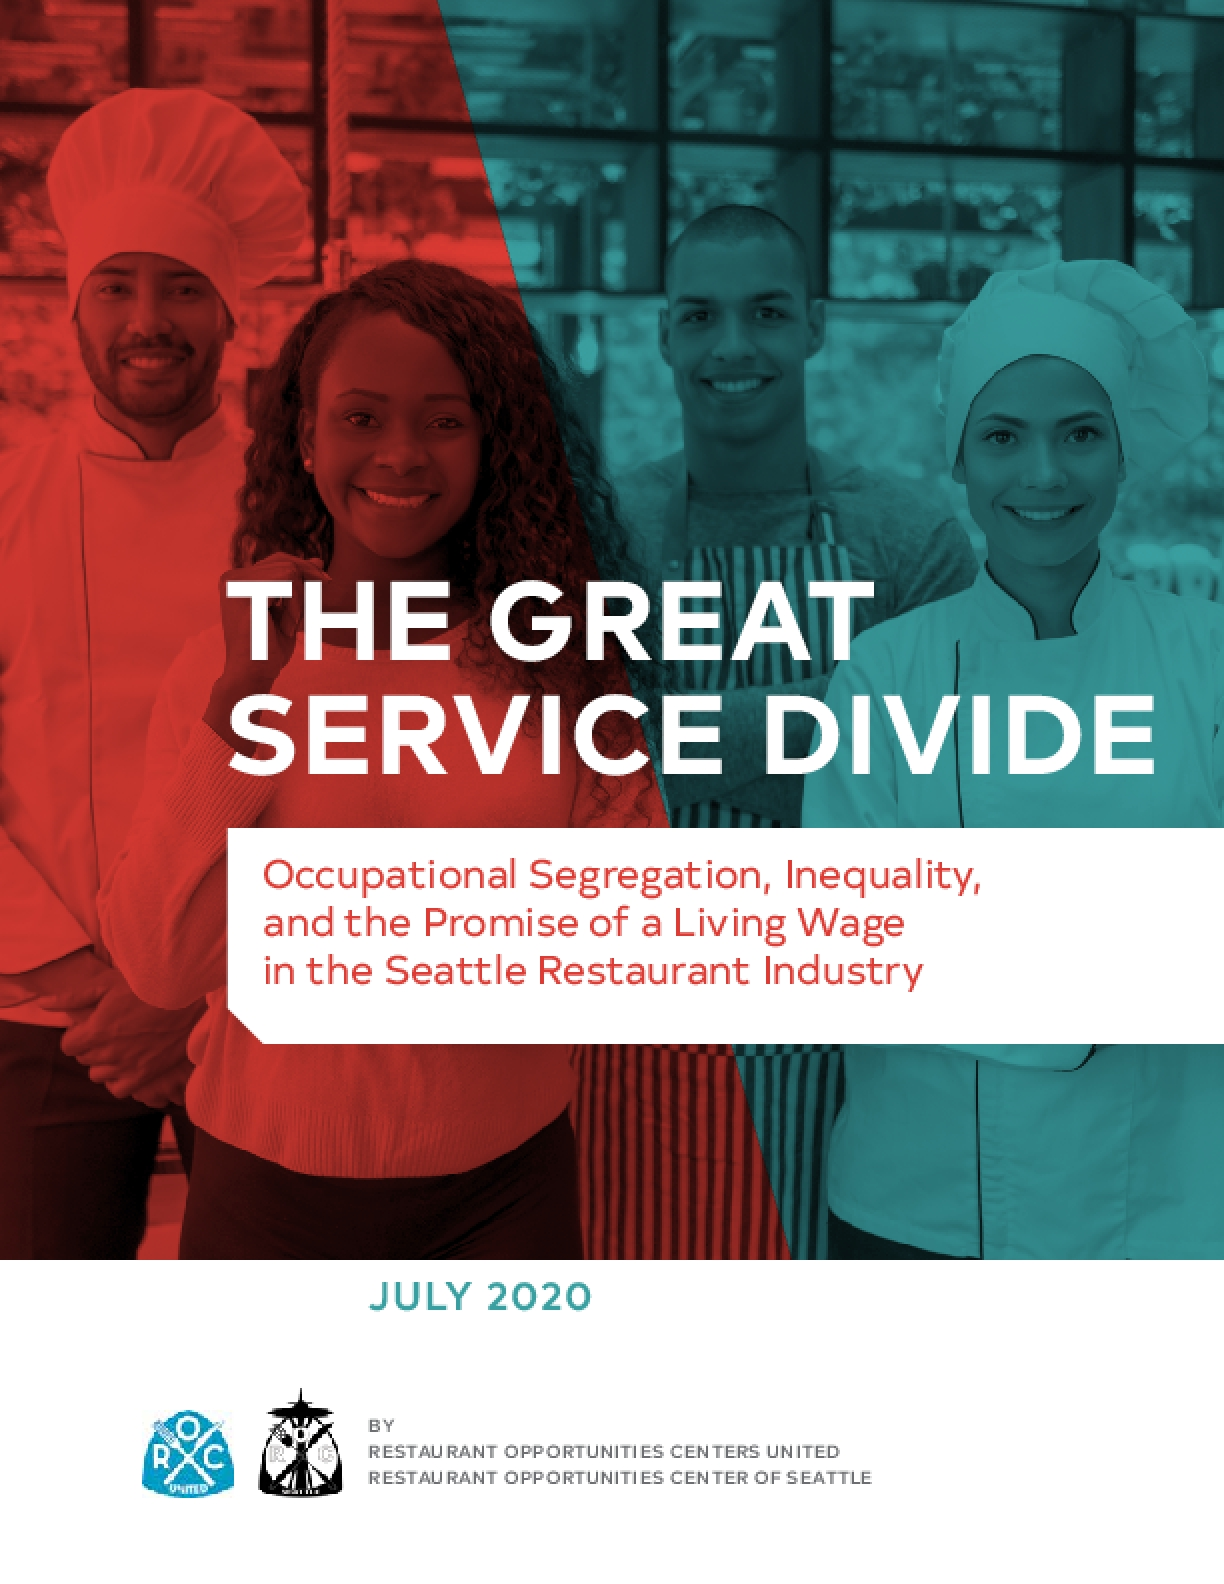 The Great Service Divide: Occupational Segregation, Inequality, and the Promise of a Living Wage in the Seattle Restaurant Industry